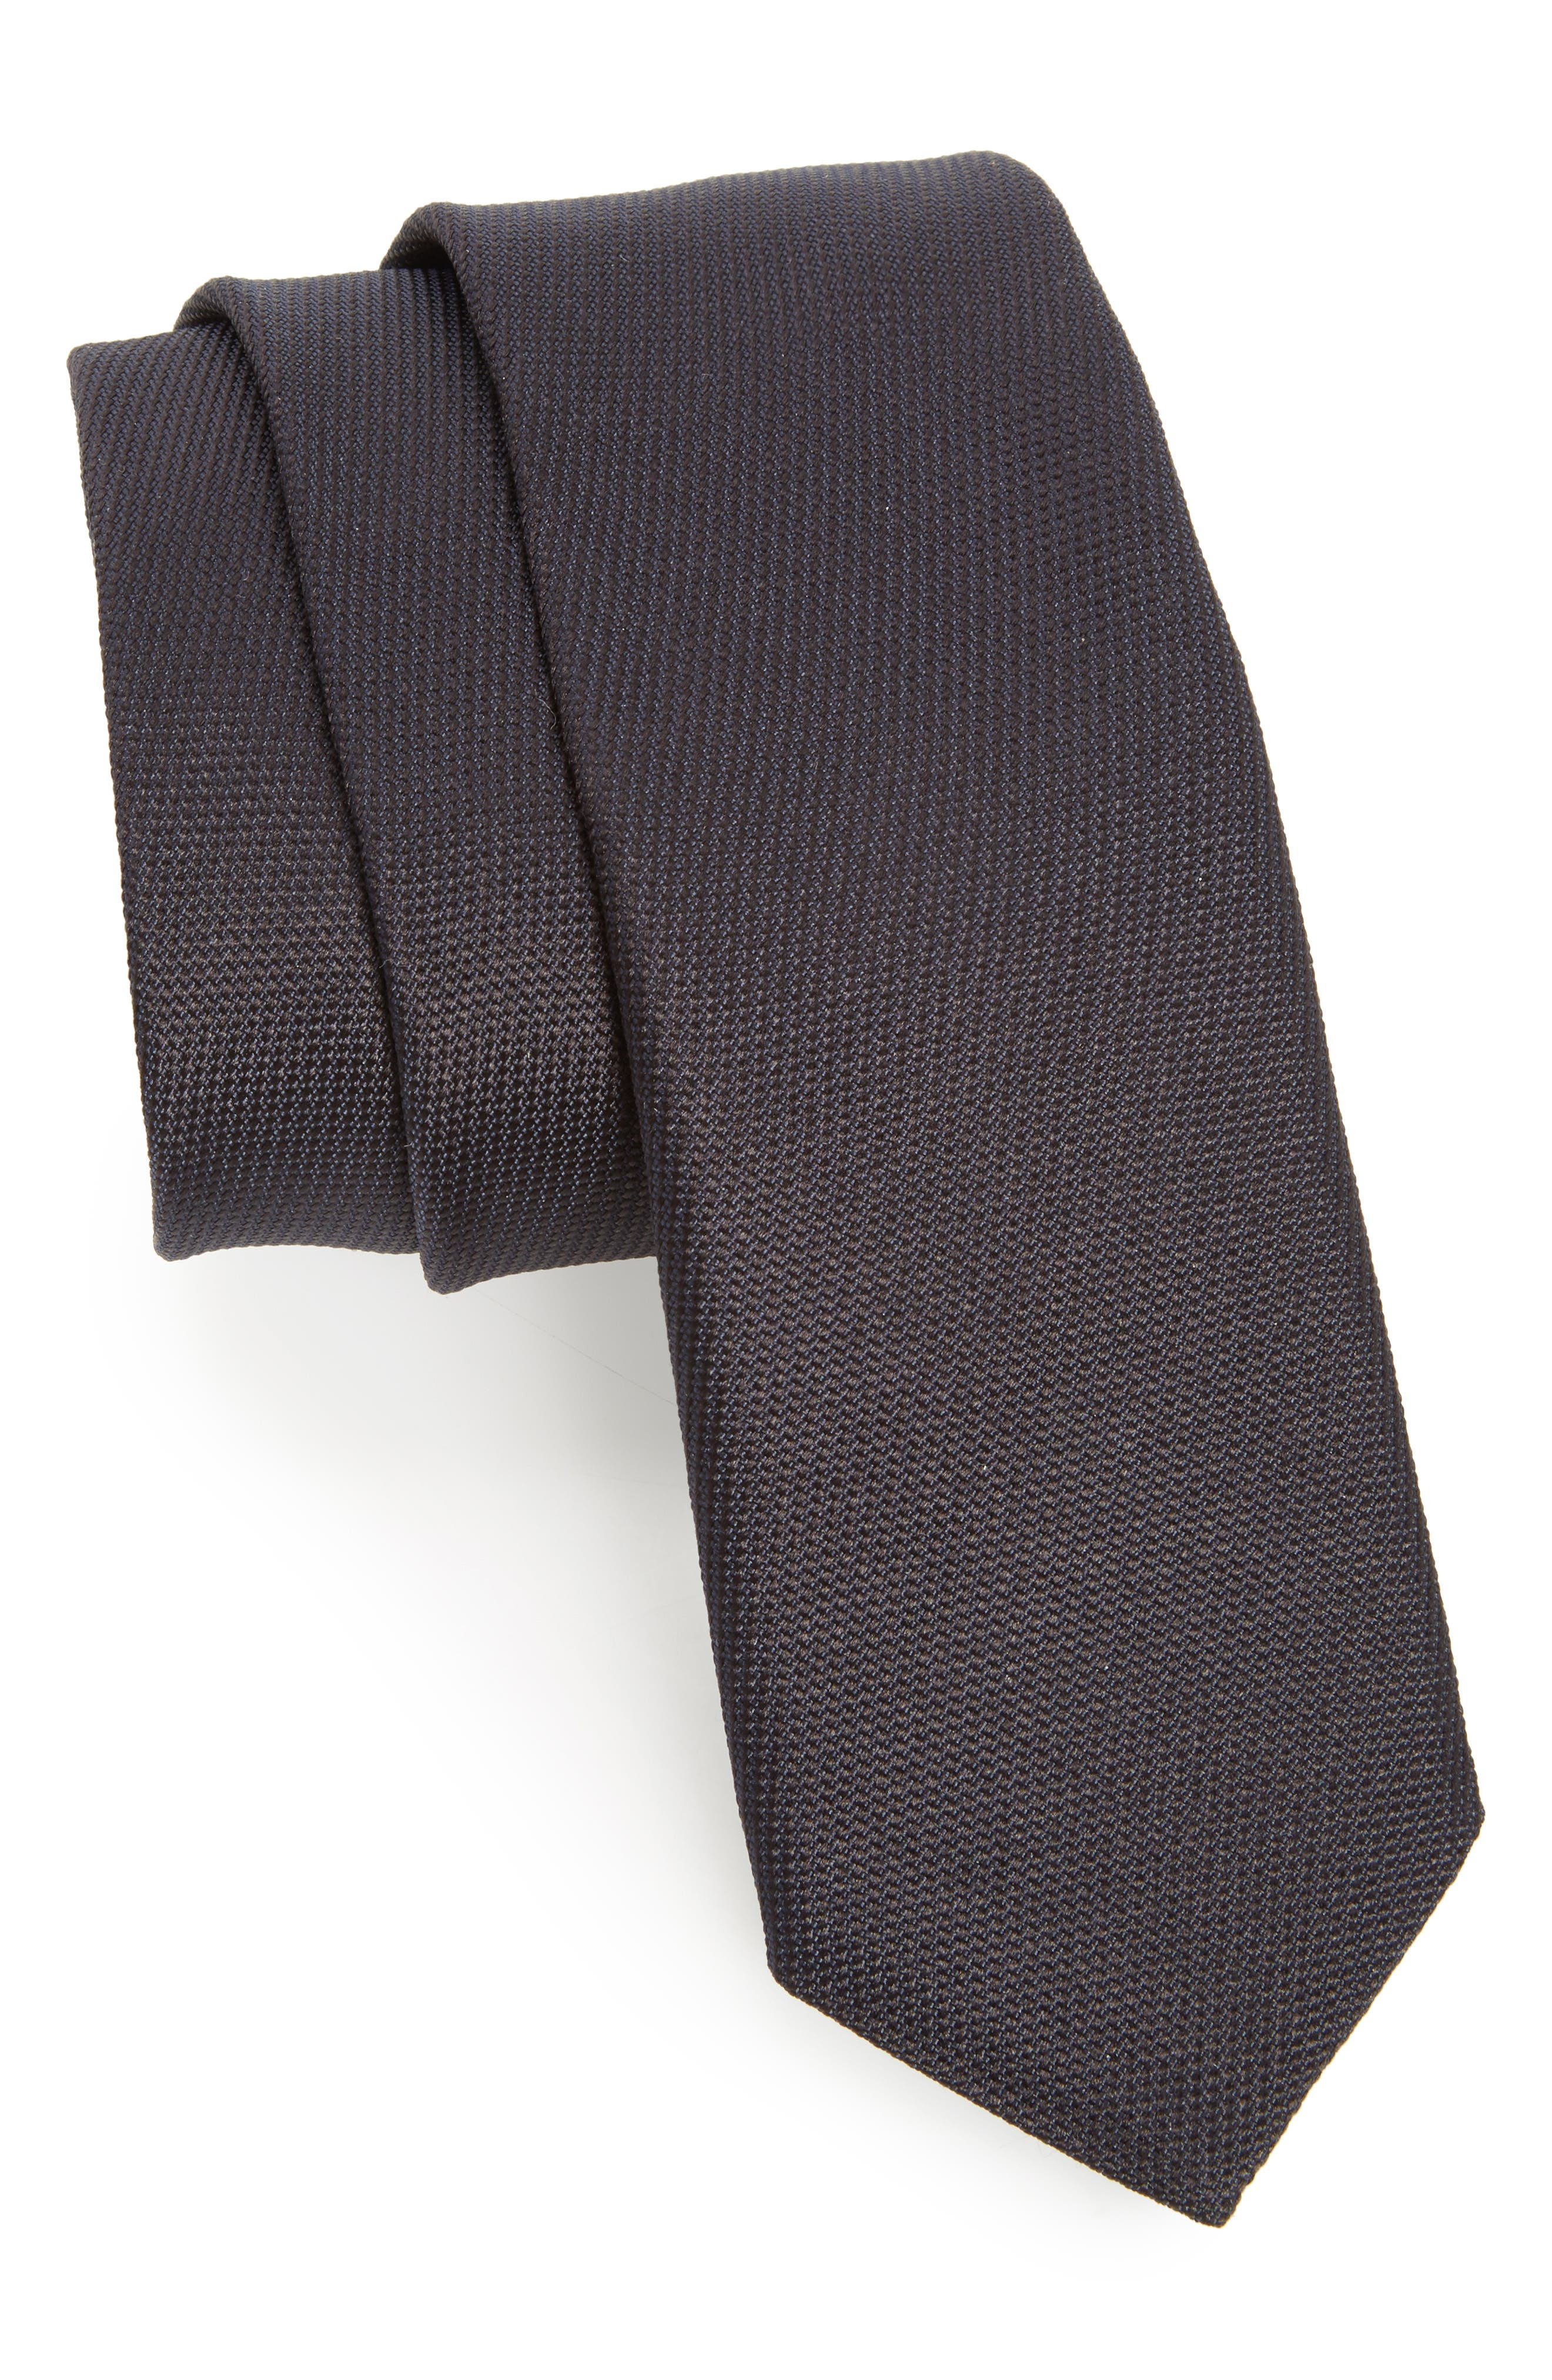 Nordstrom x BOSS Silk Tie,                         Main,                         color, 402